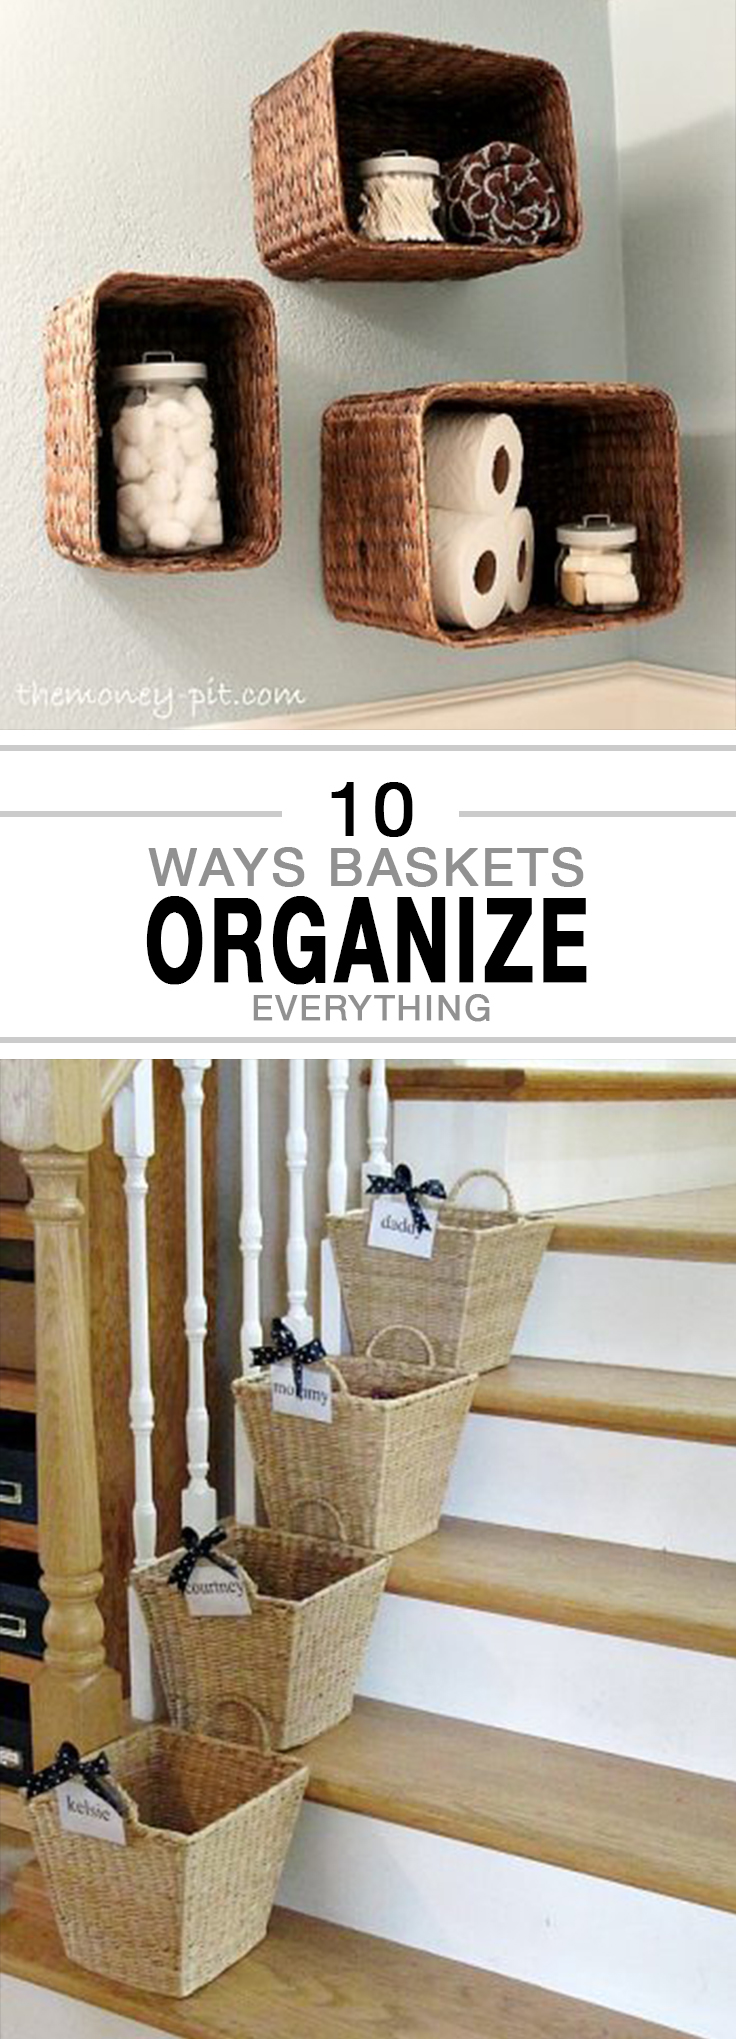 How to Organize Almost Anything With Baskets- Basket organization, basket storage, organize with baskets